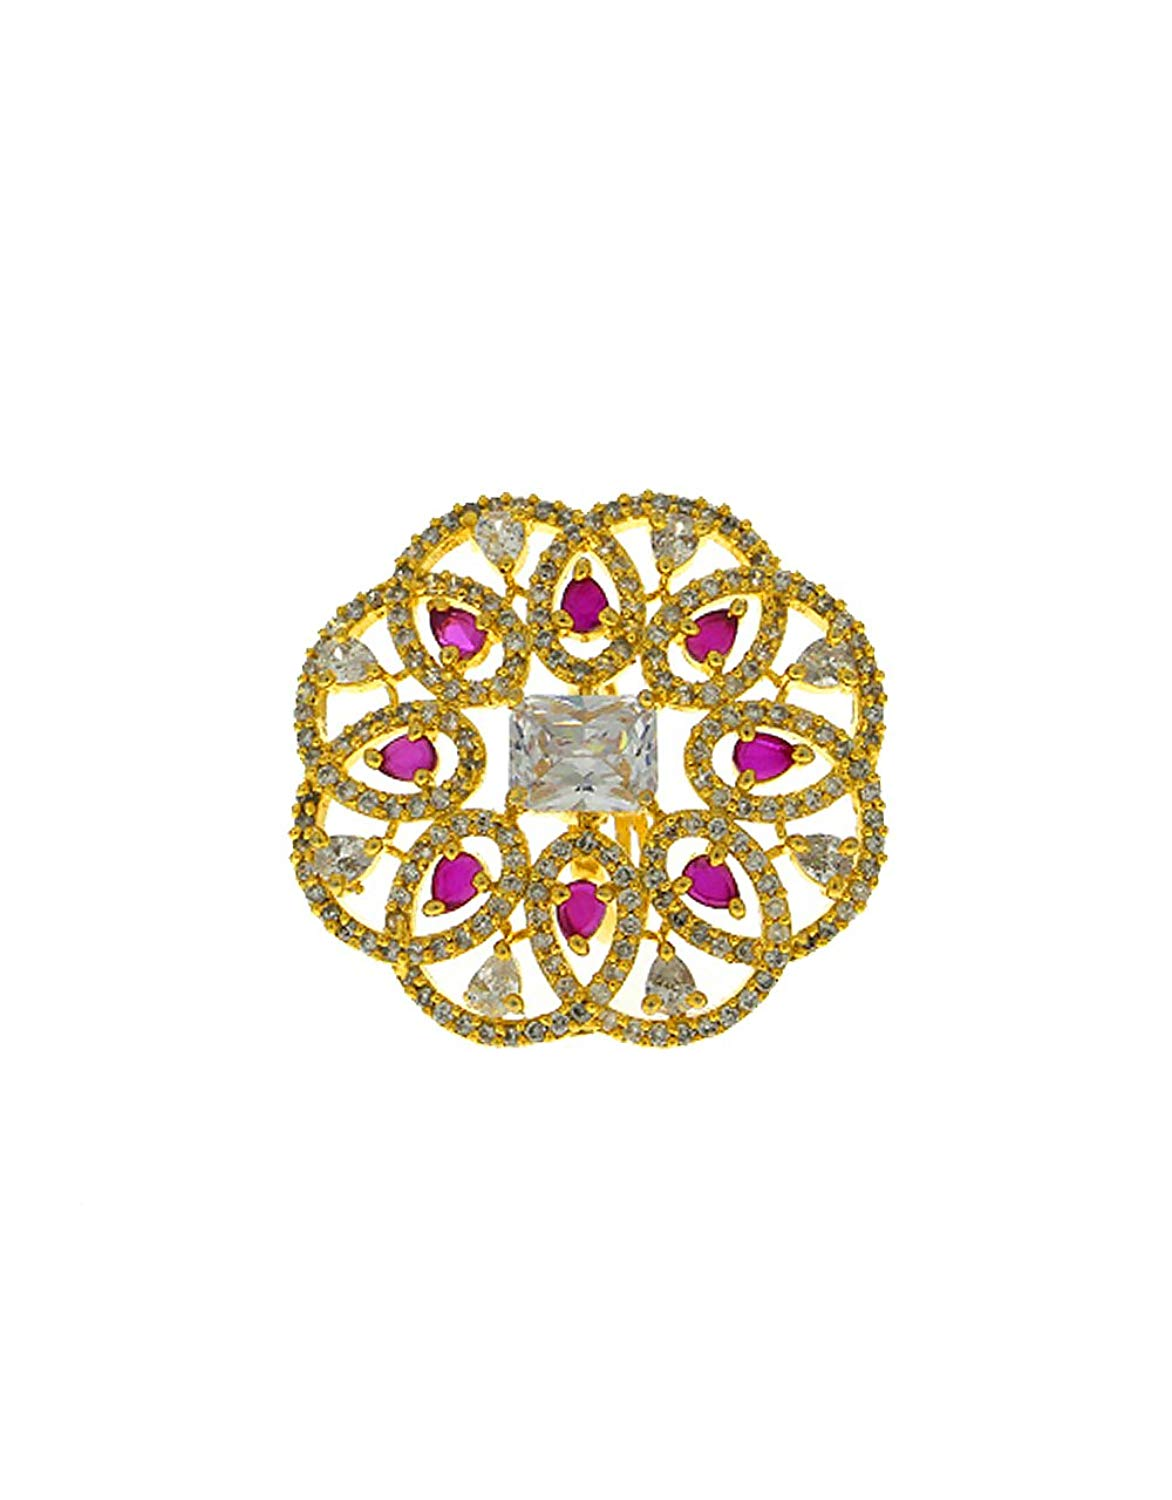 Anuradha Art Golden Finish Styled With Studded Pink Colour Stone Wonderful Finger Ring For Women/Girls